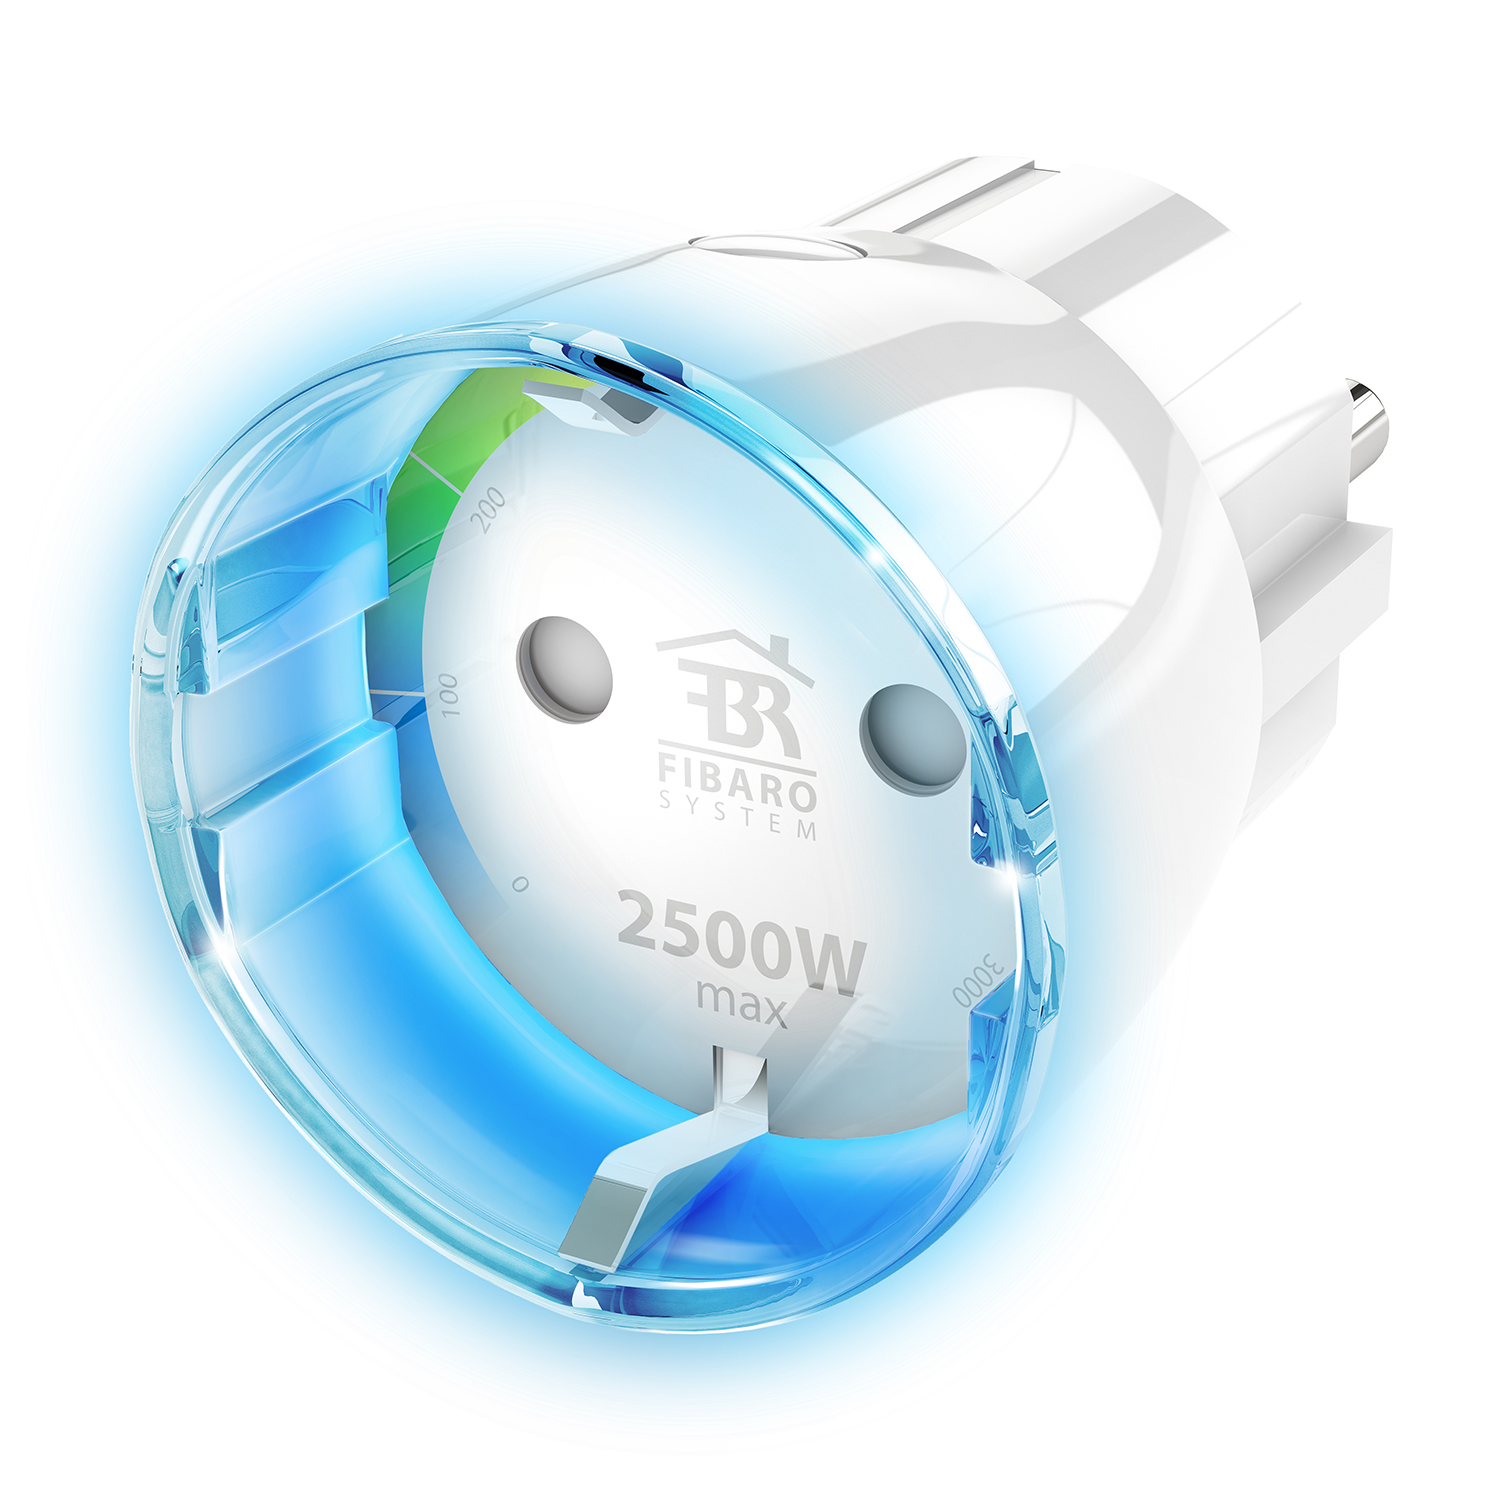 caption text